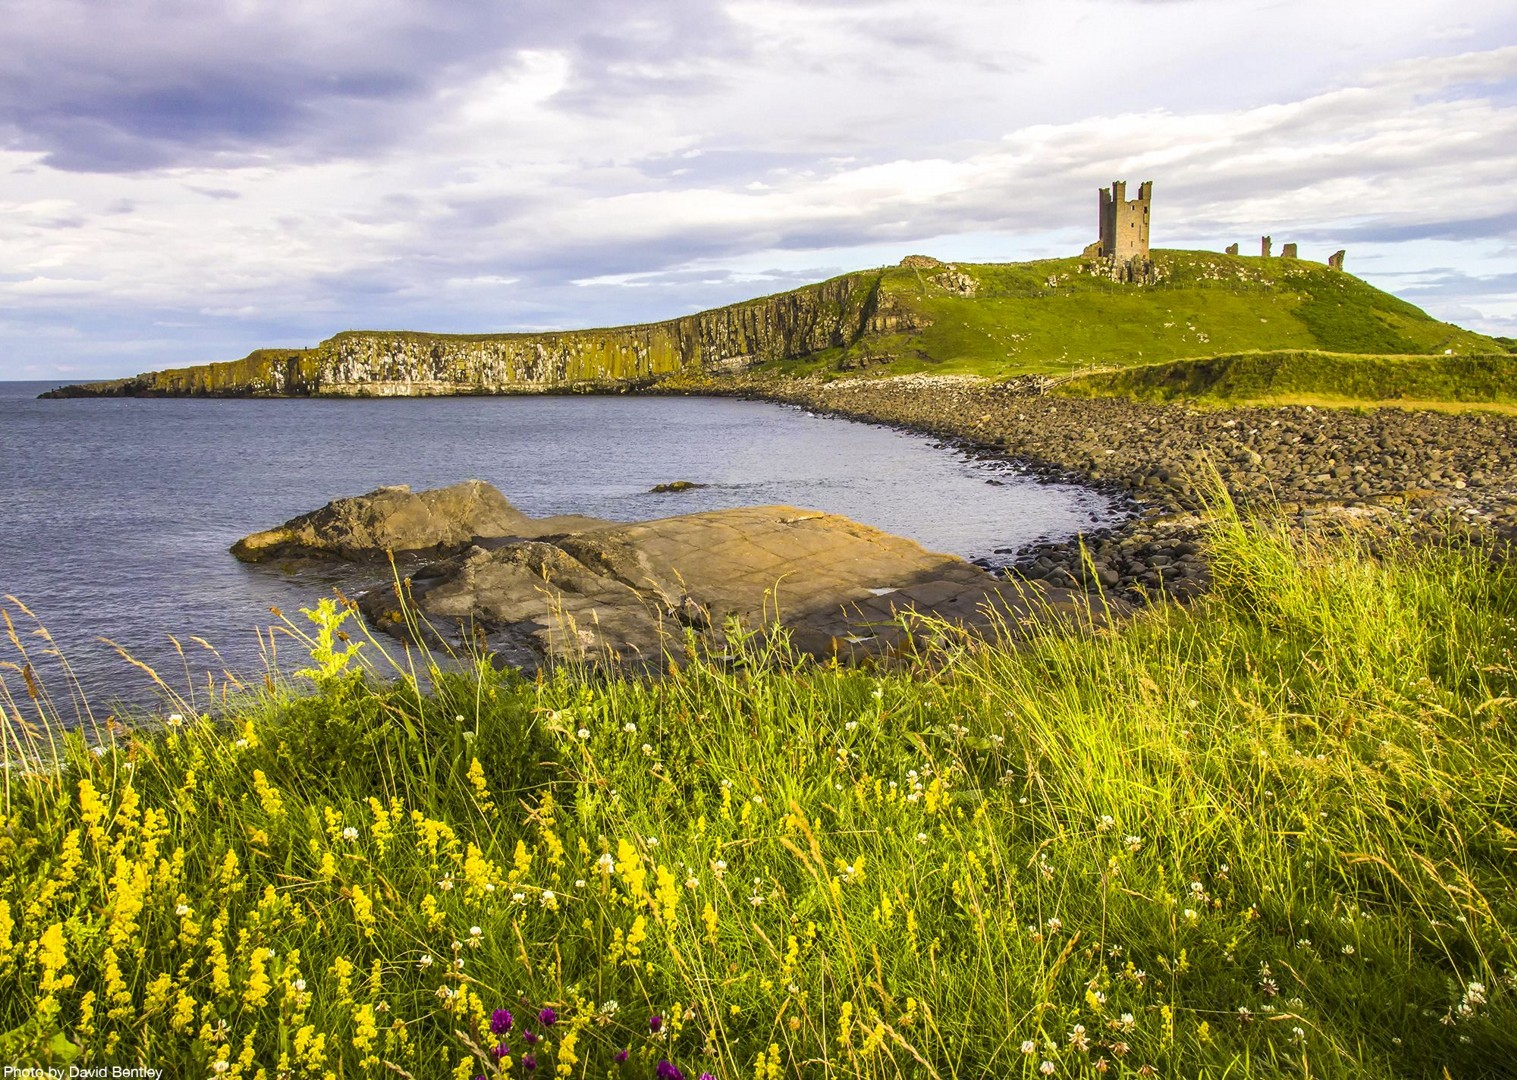 castles-self-guided-2-day-northumberland-coast-holiday-cycling-tour.jpg - UK - Coast and Castles - 6 Days Cycling - Self-Guided Leisure Cycling Holiday - Leisure Cycling